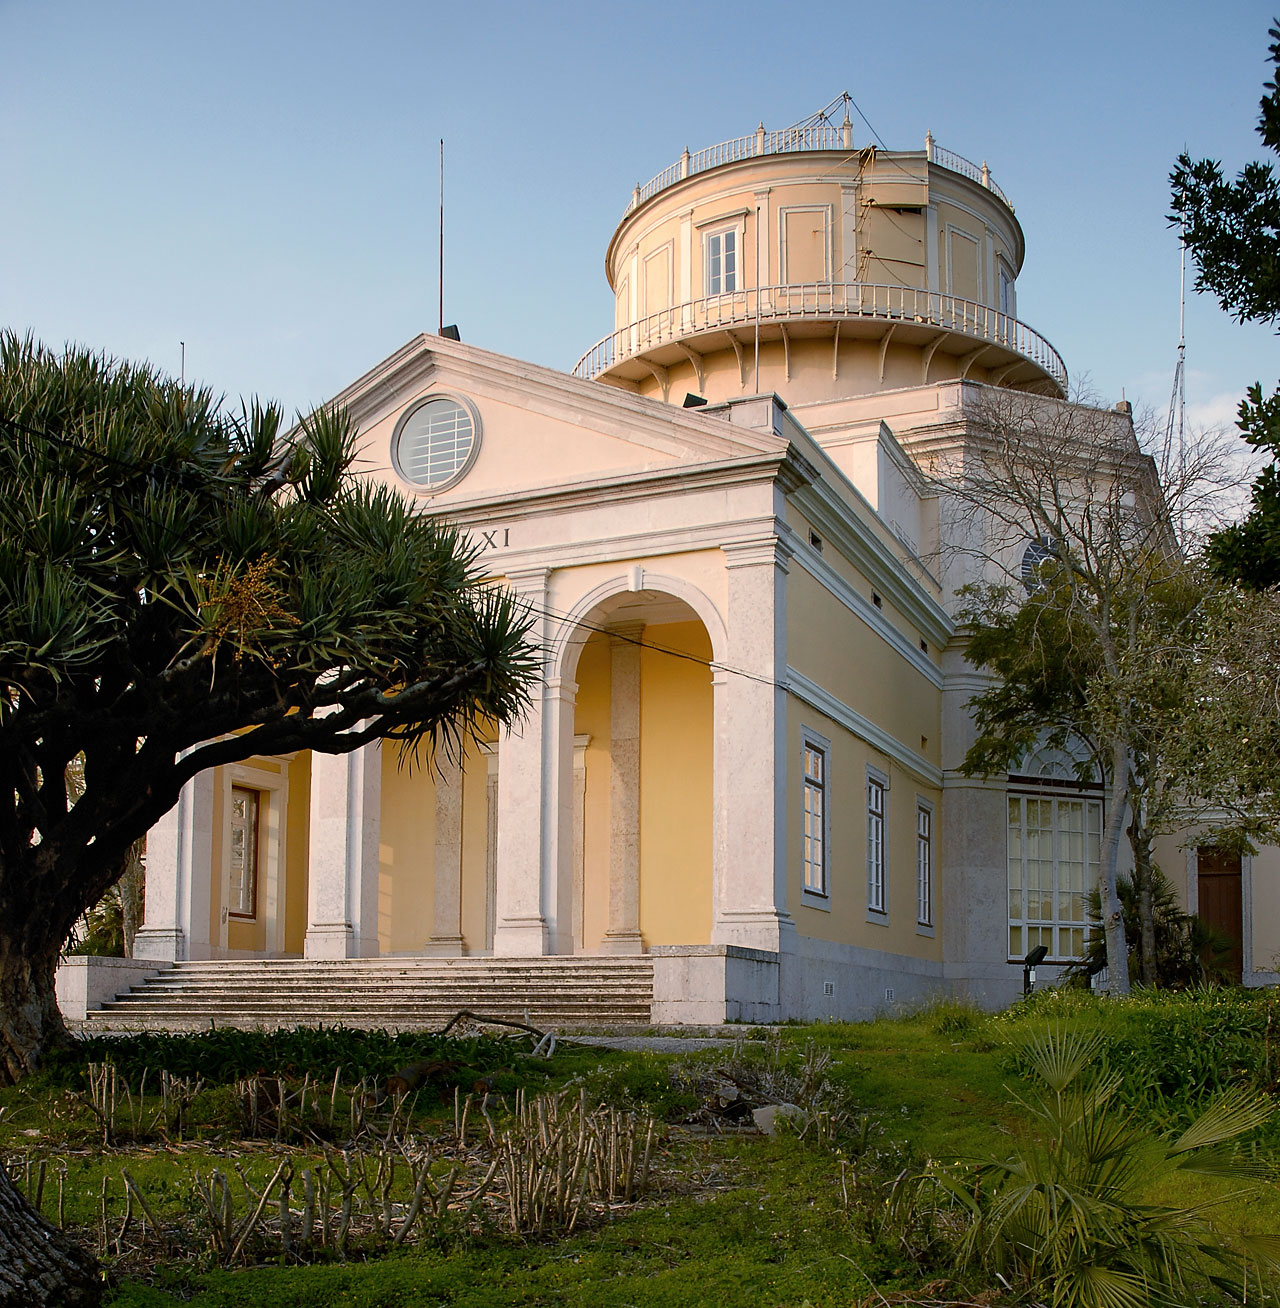 The Centre for Astronomy and Astrophysics of the University of Lisbon (CAAUL)